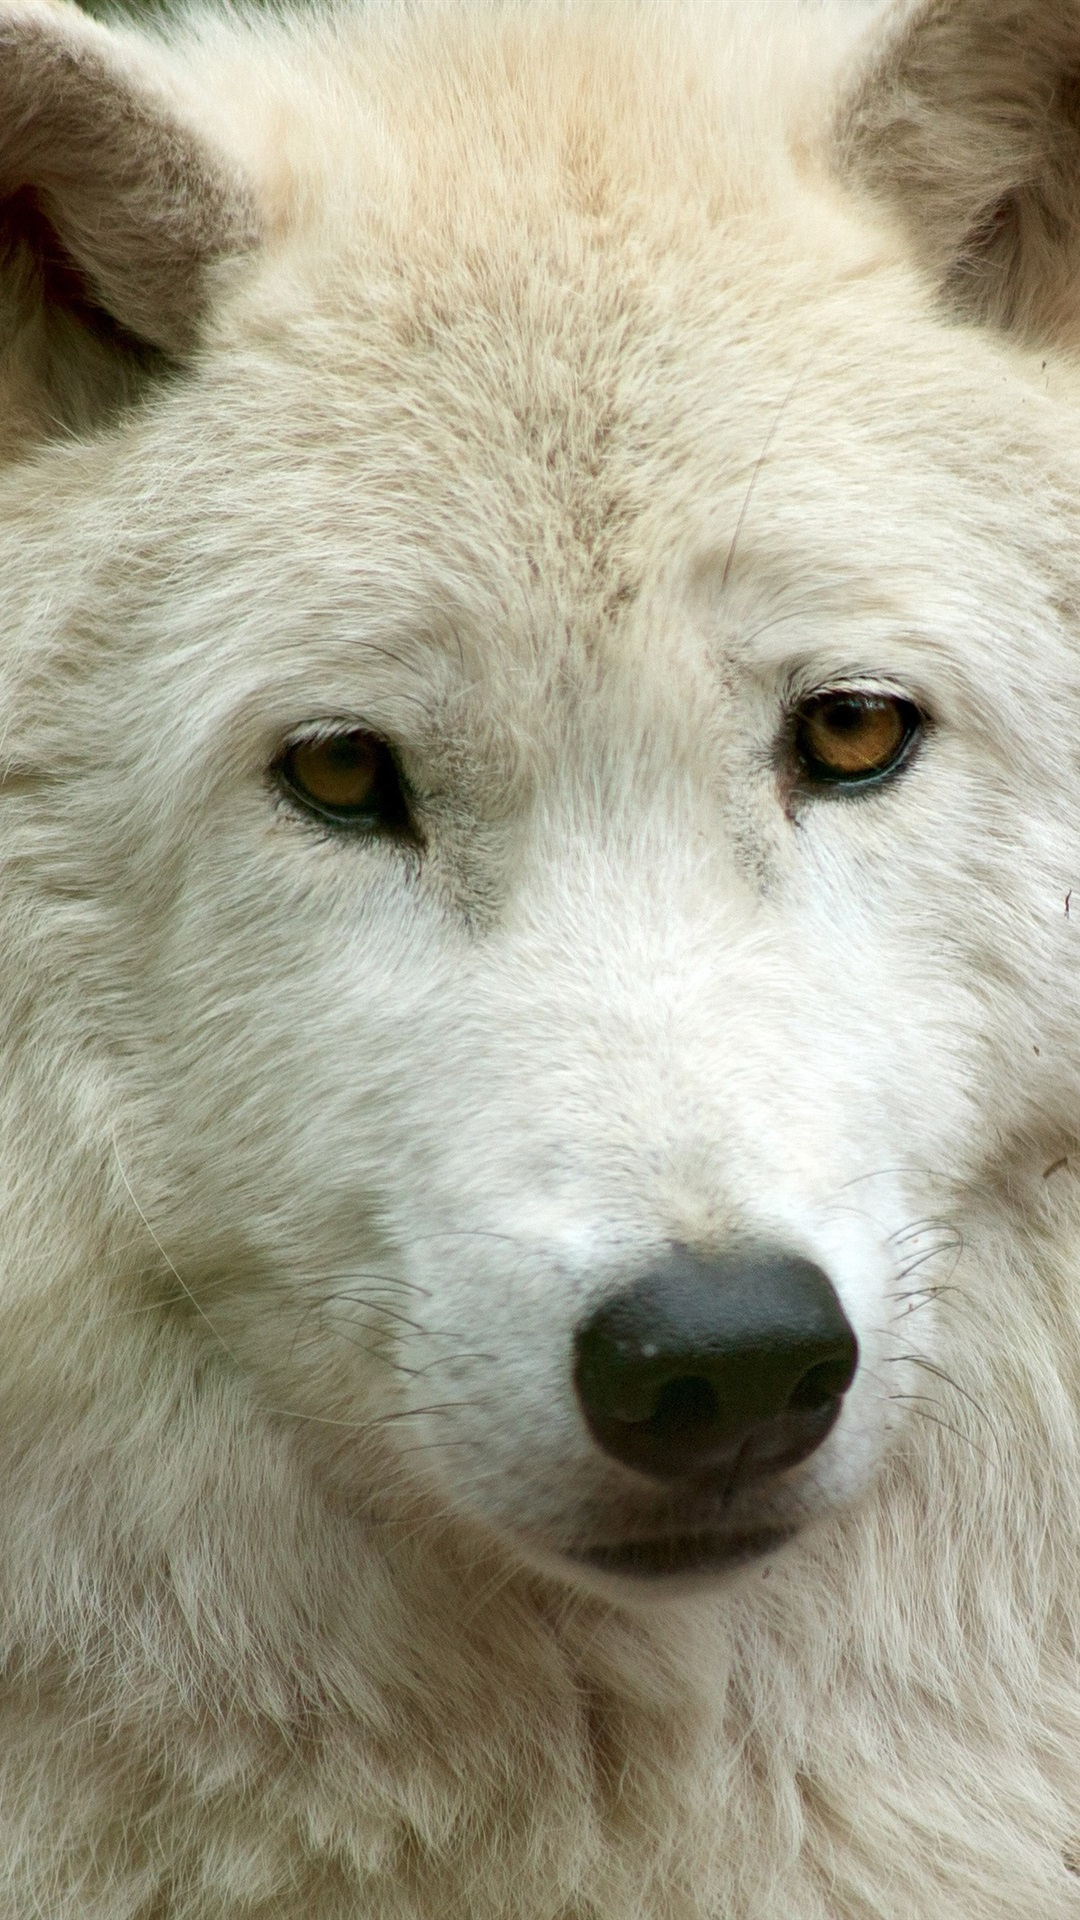 Wallpaper White wolf front view, face 3840x2160 UHD 4K ...